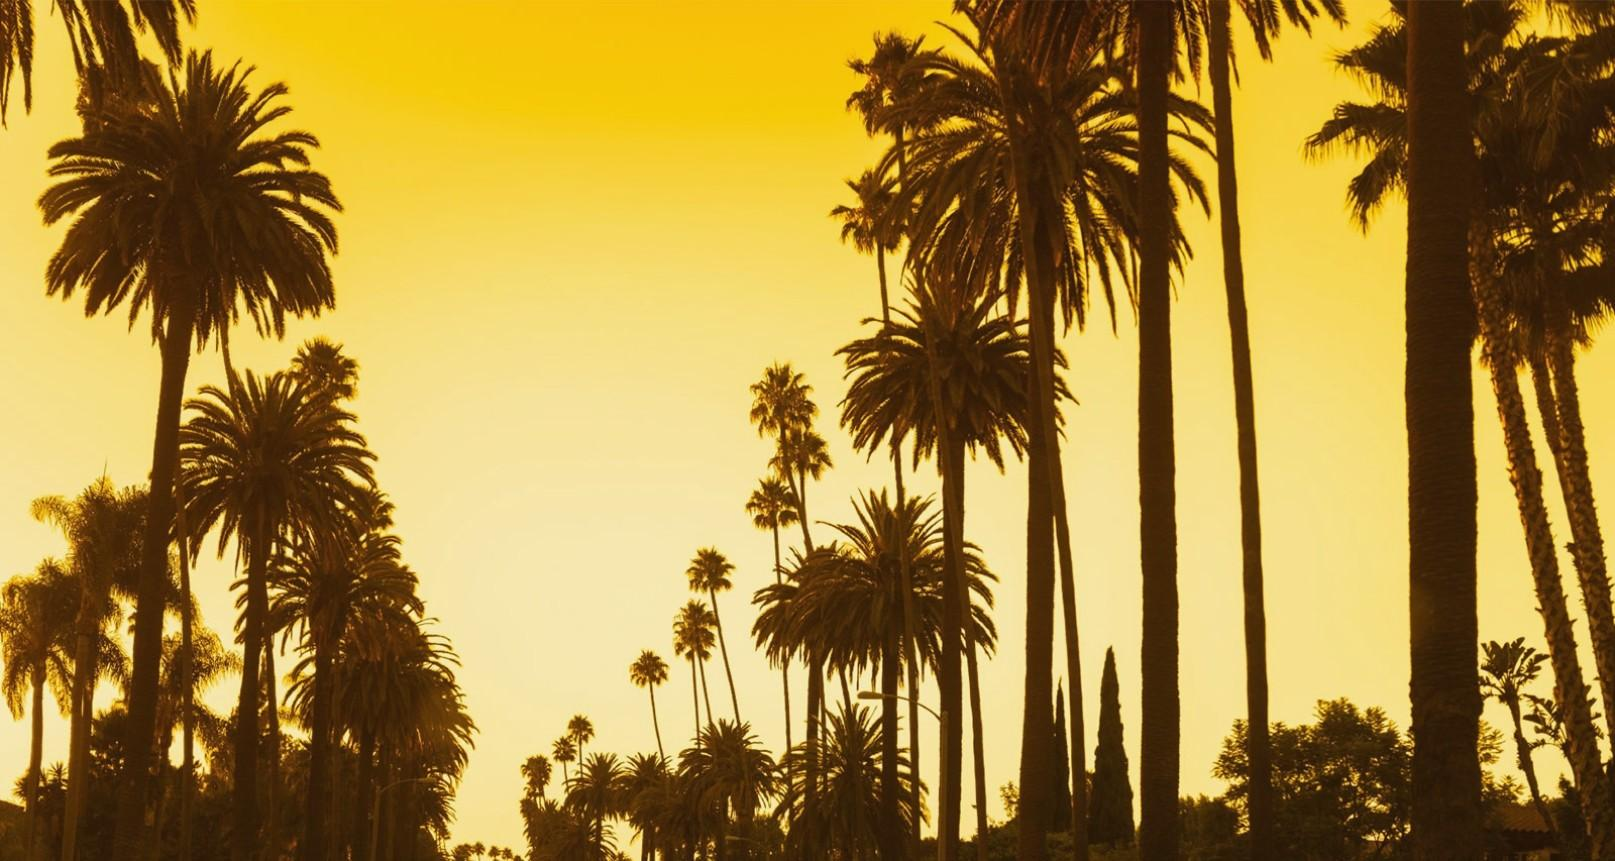 Los Angeles wallpapers for iphone